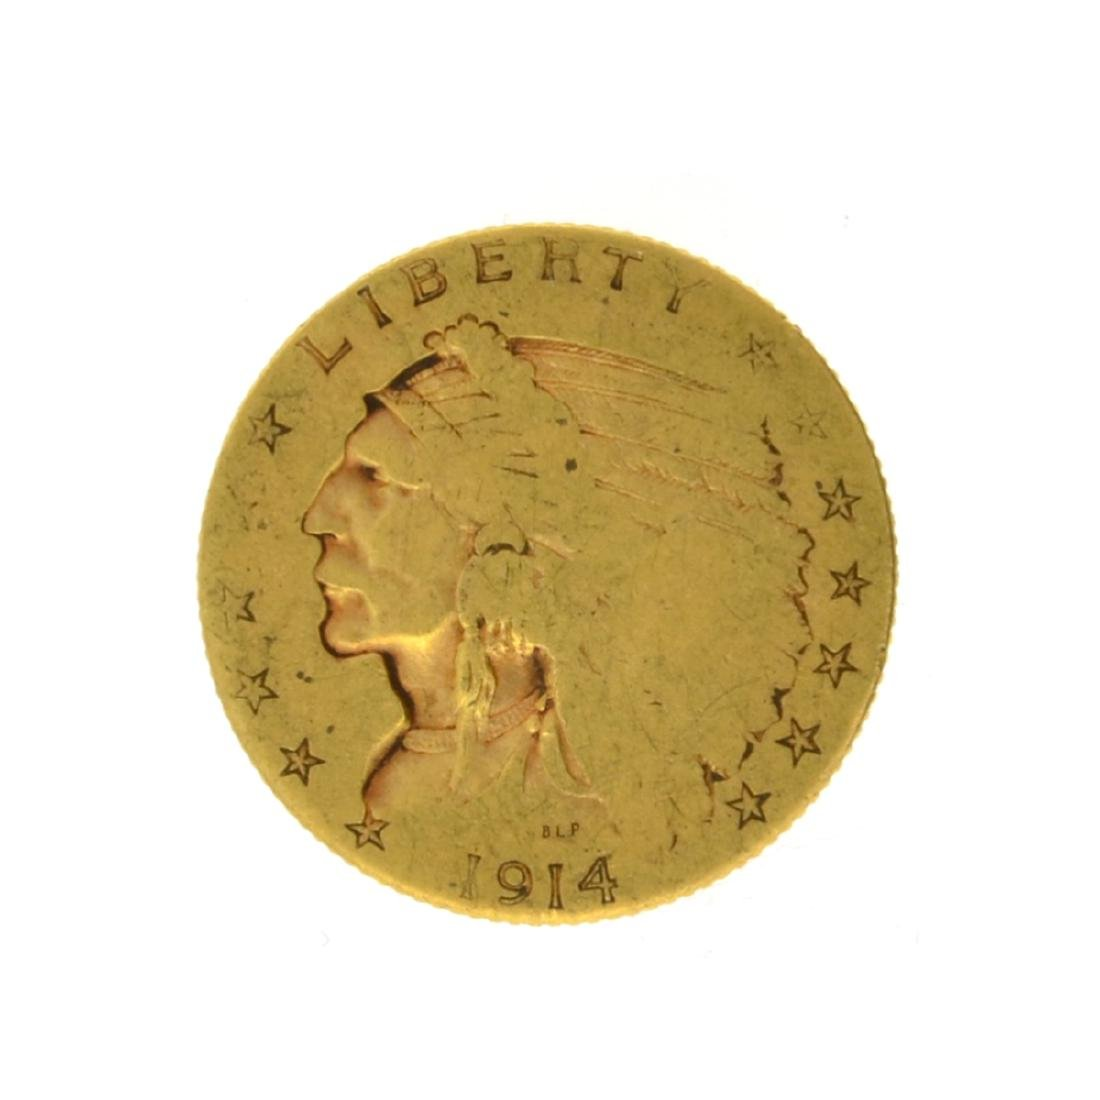 1914 $2.50 Indian Head Gold Coin